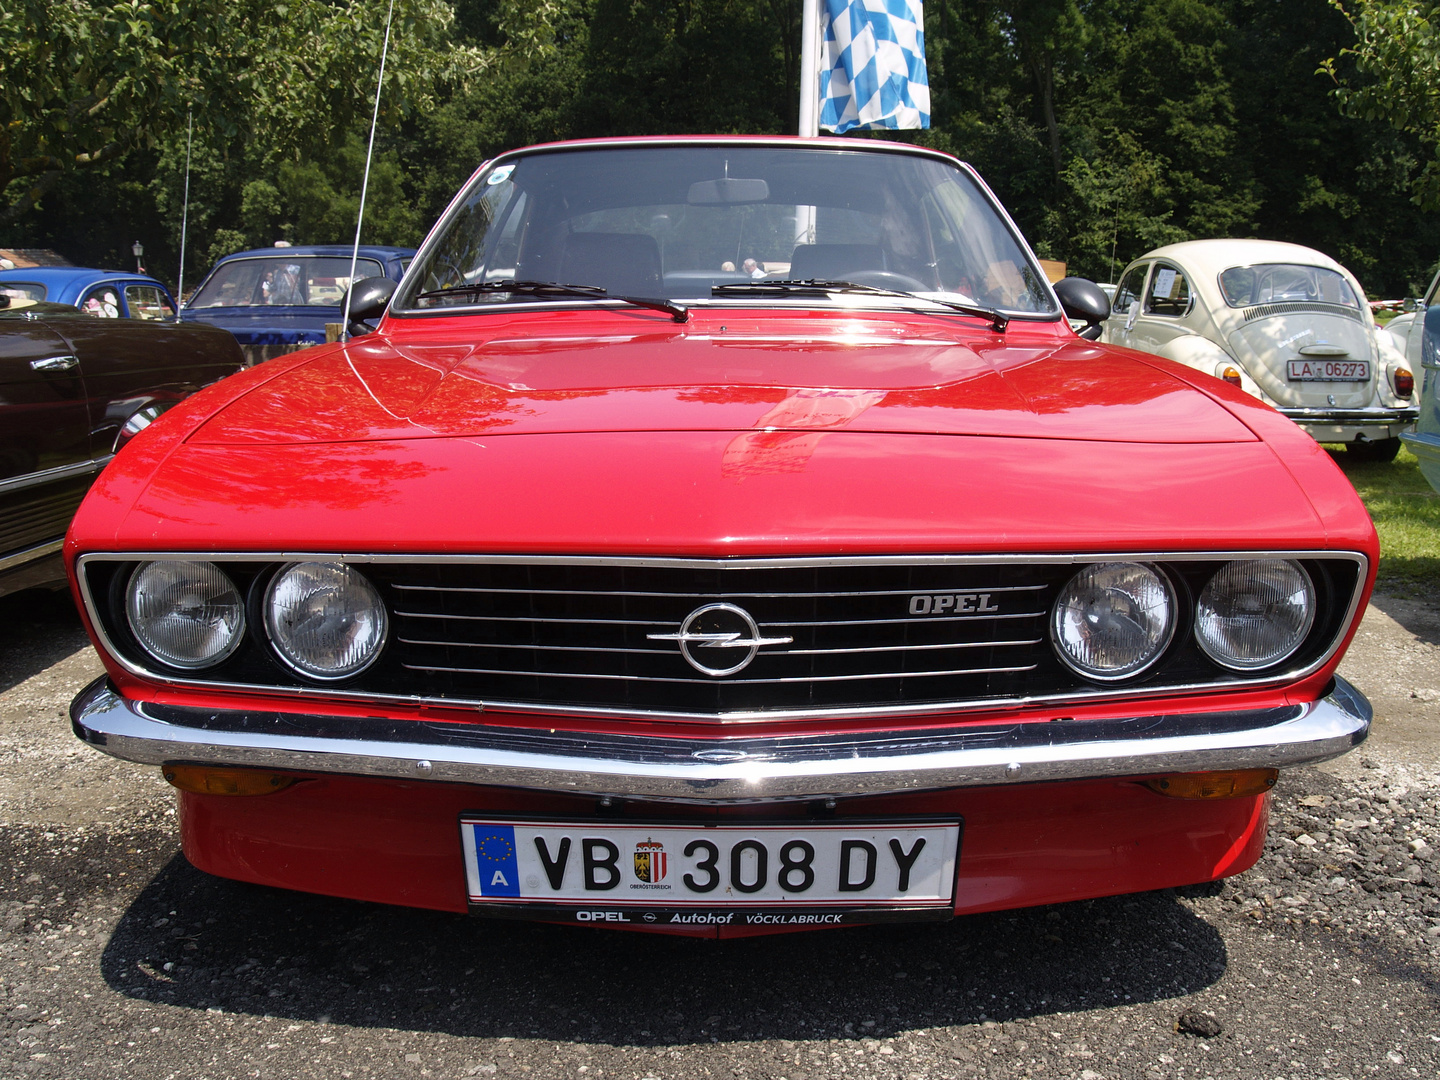 opel manta a foto bild autos zweir der oldtimer youngtimer auto legenden bilder auf. Black Bedroom Furniture Sets. Home Design Ideas